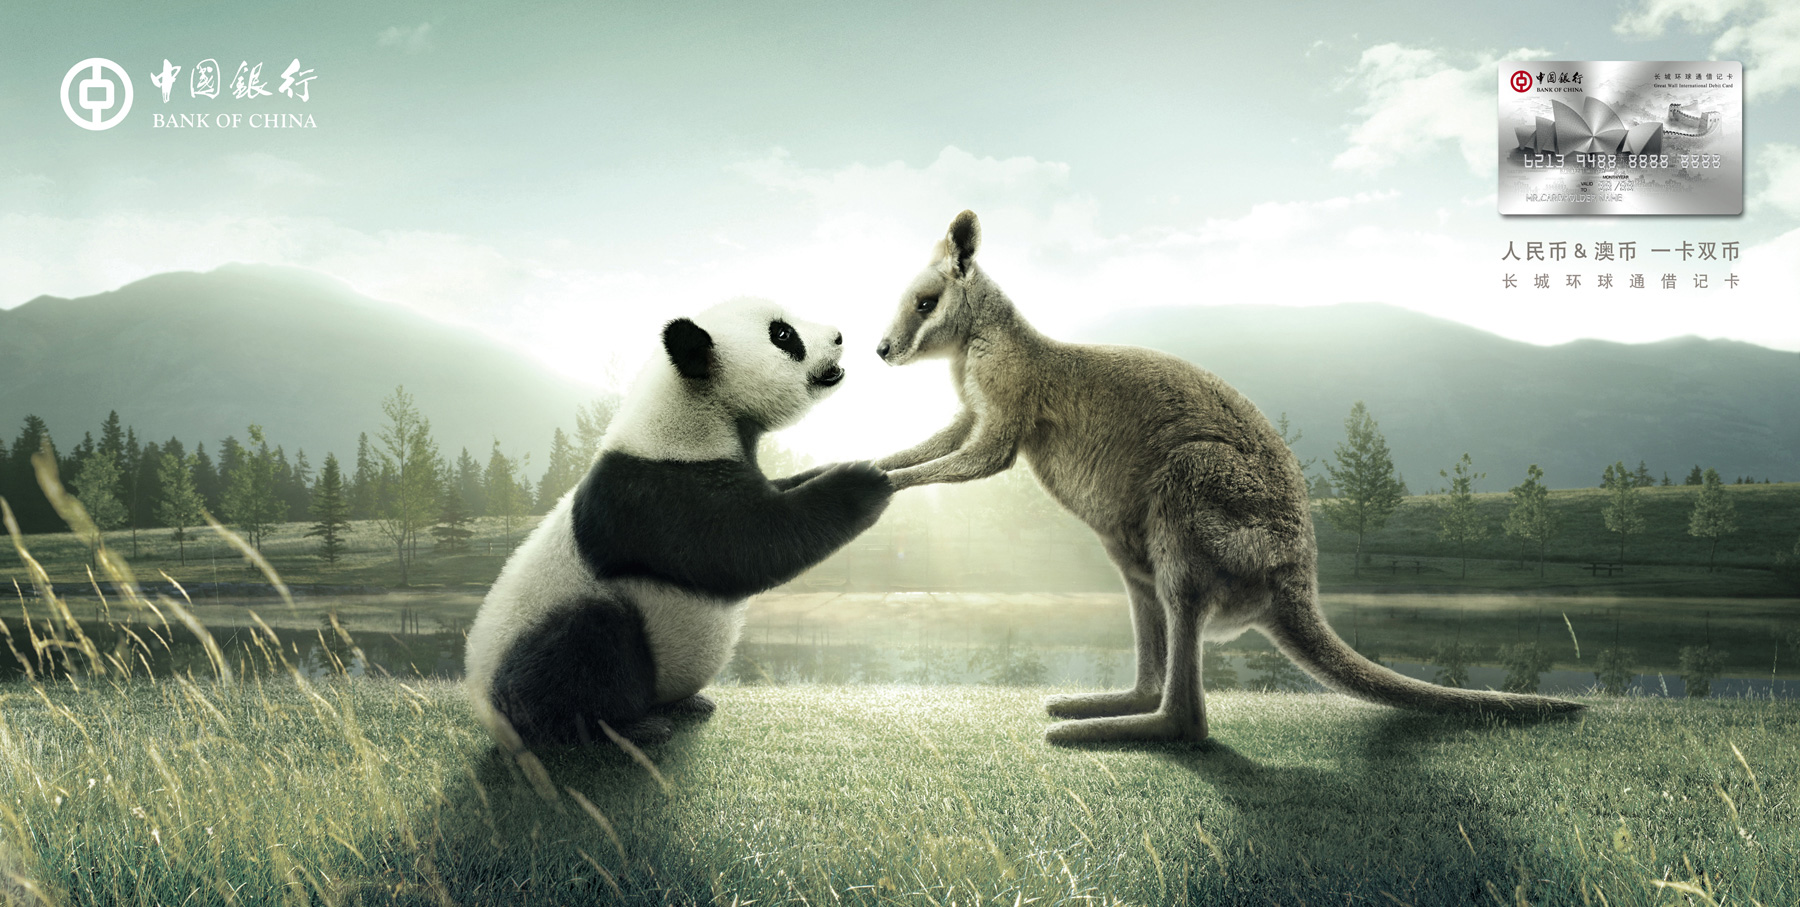 Campagne affichage Bank of China